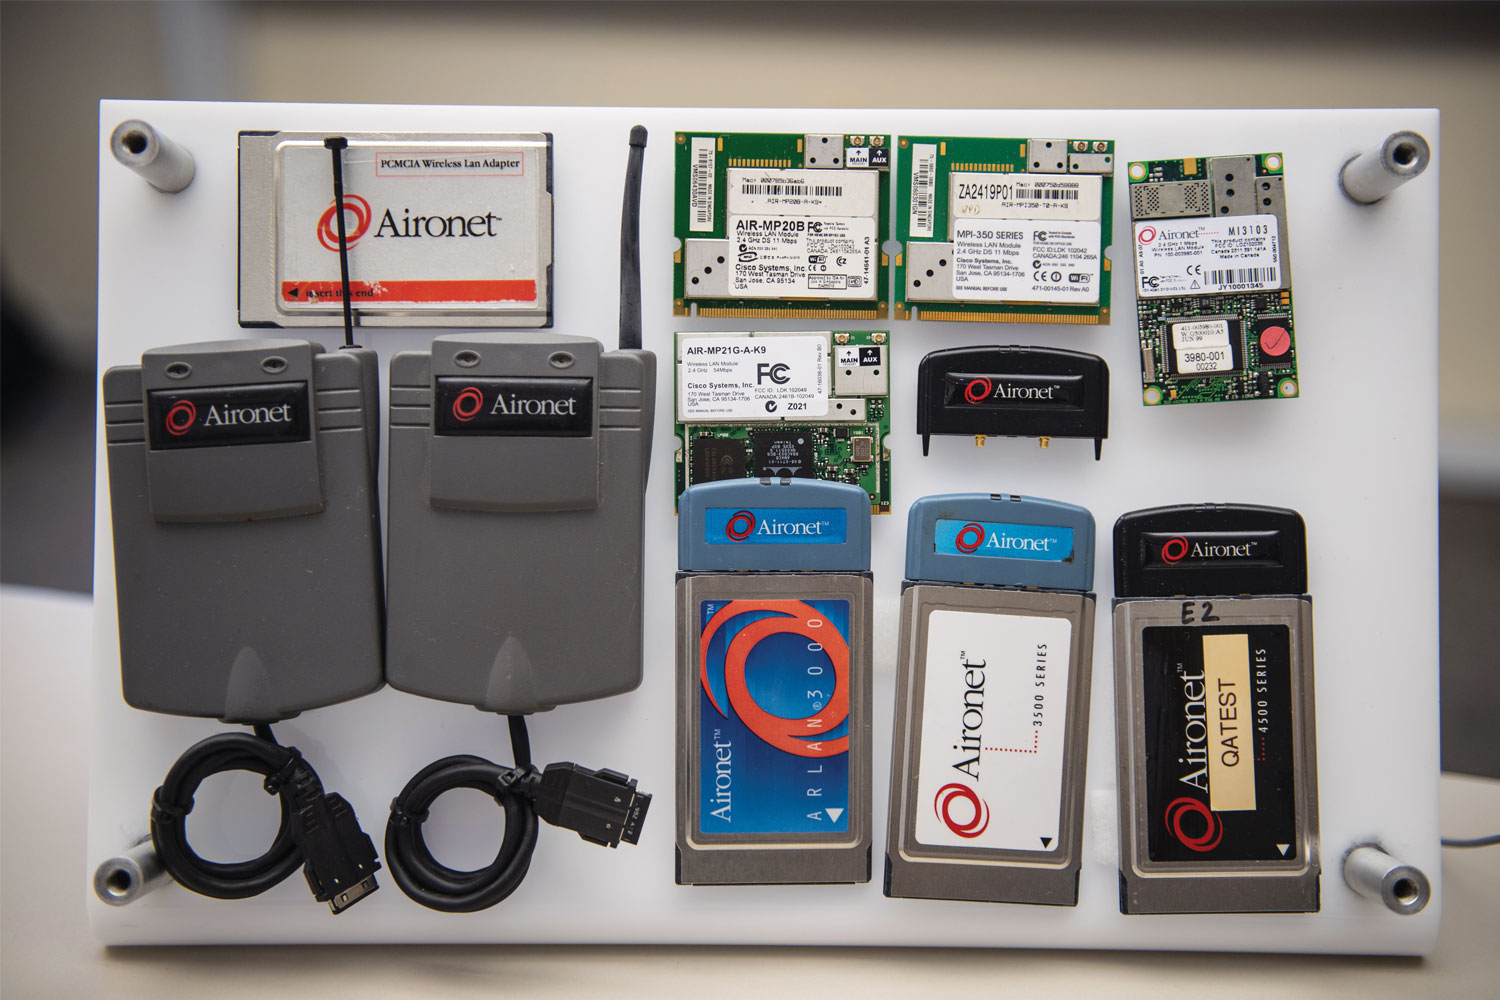 A sample of early models of Aironet wireless devices